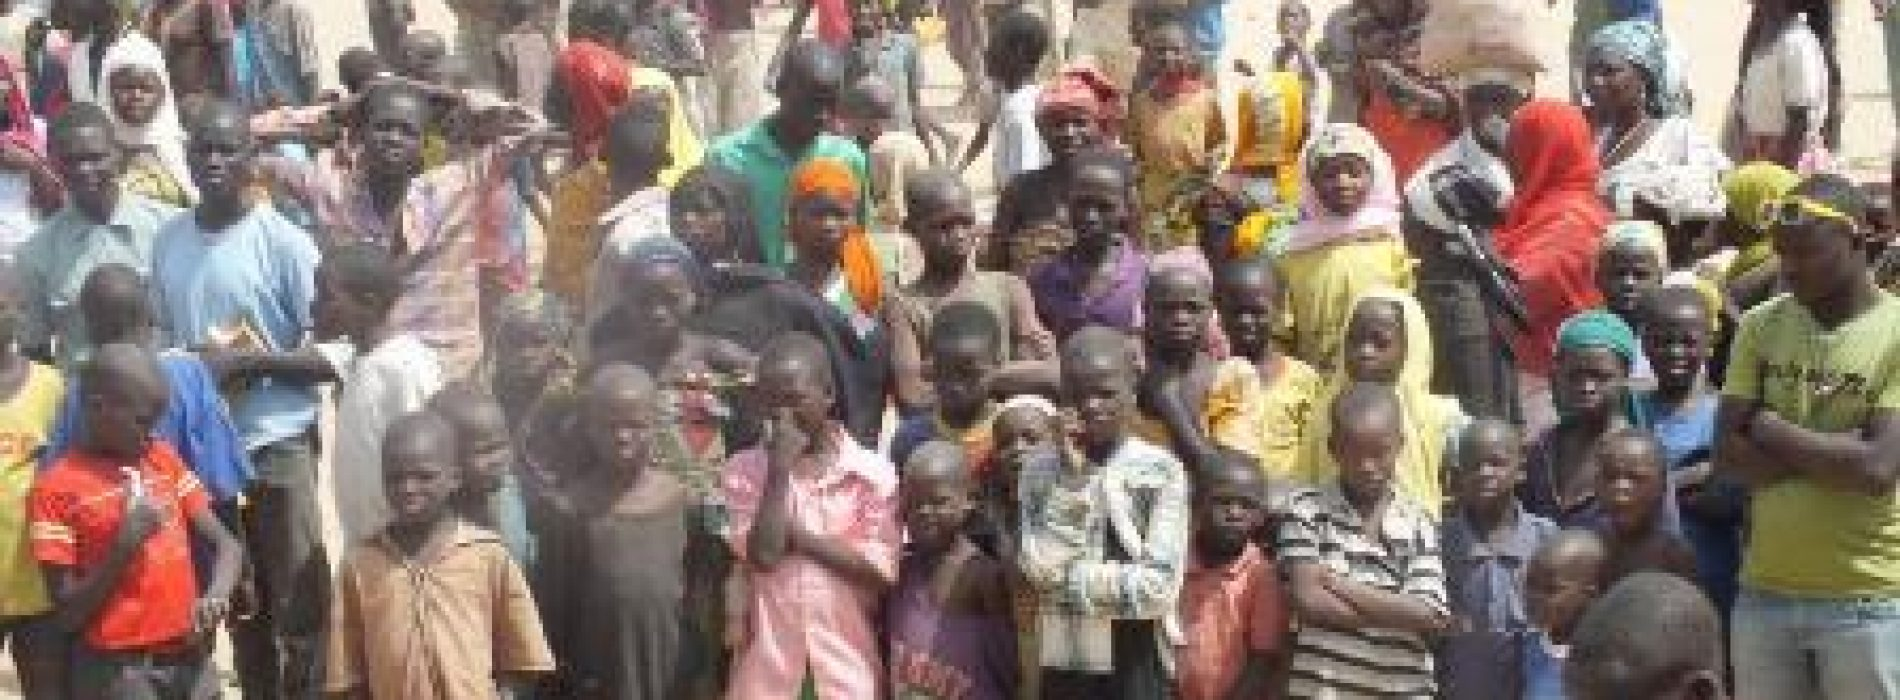 Vigilante group against Boko Haram releases 894 children